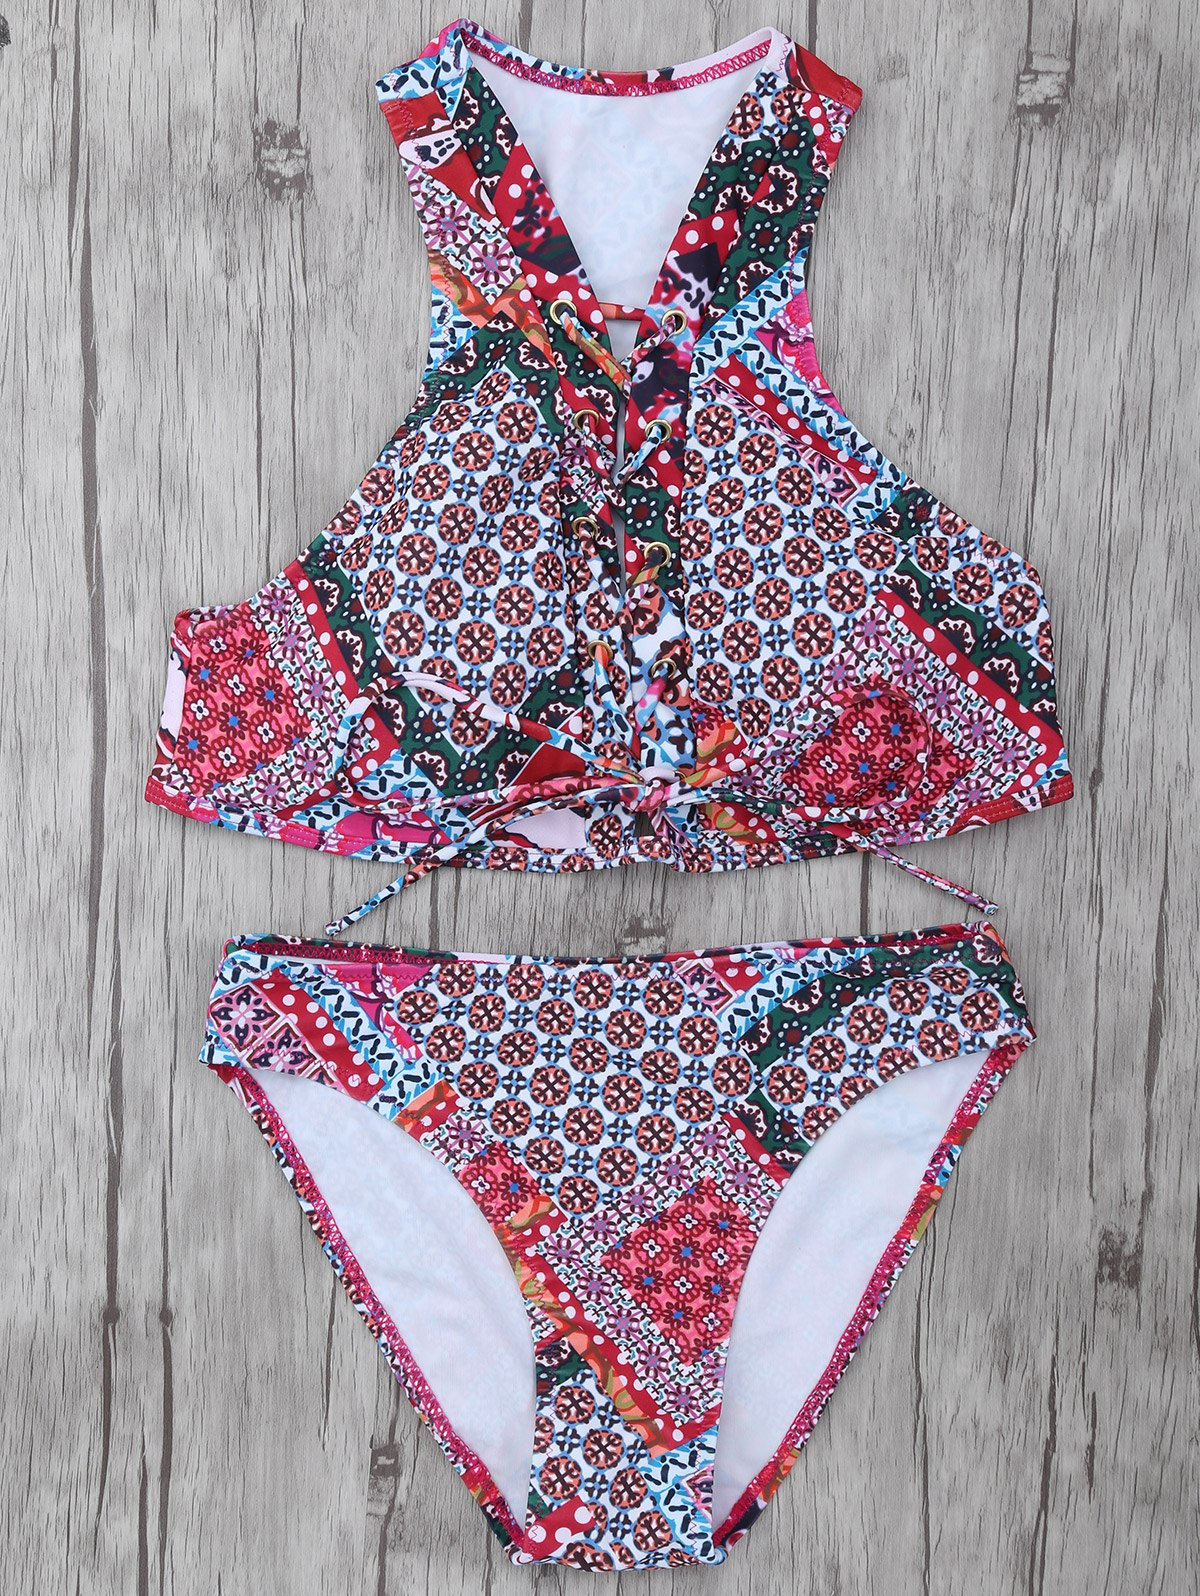 Lace Up Patterned Bikini Set